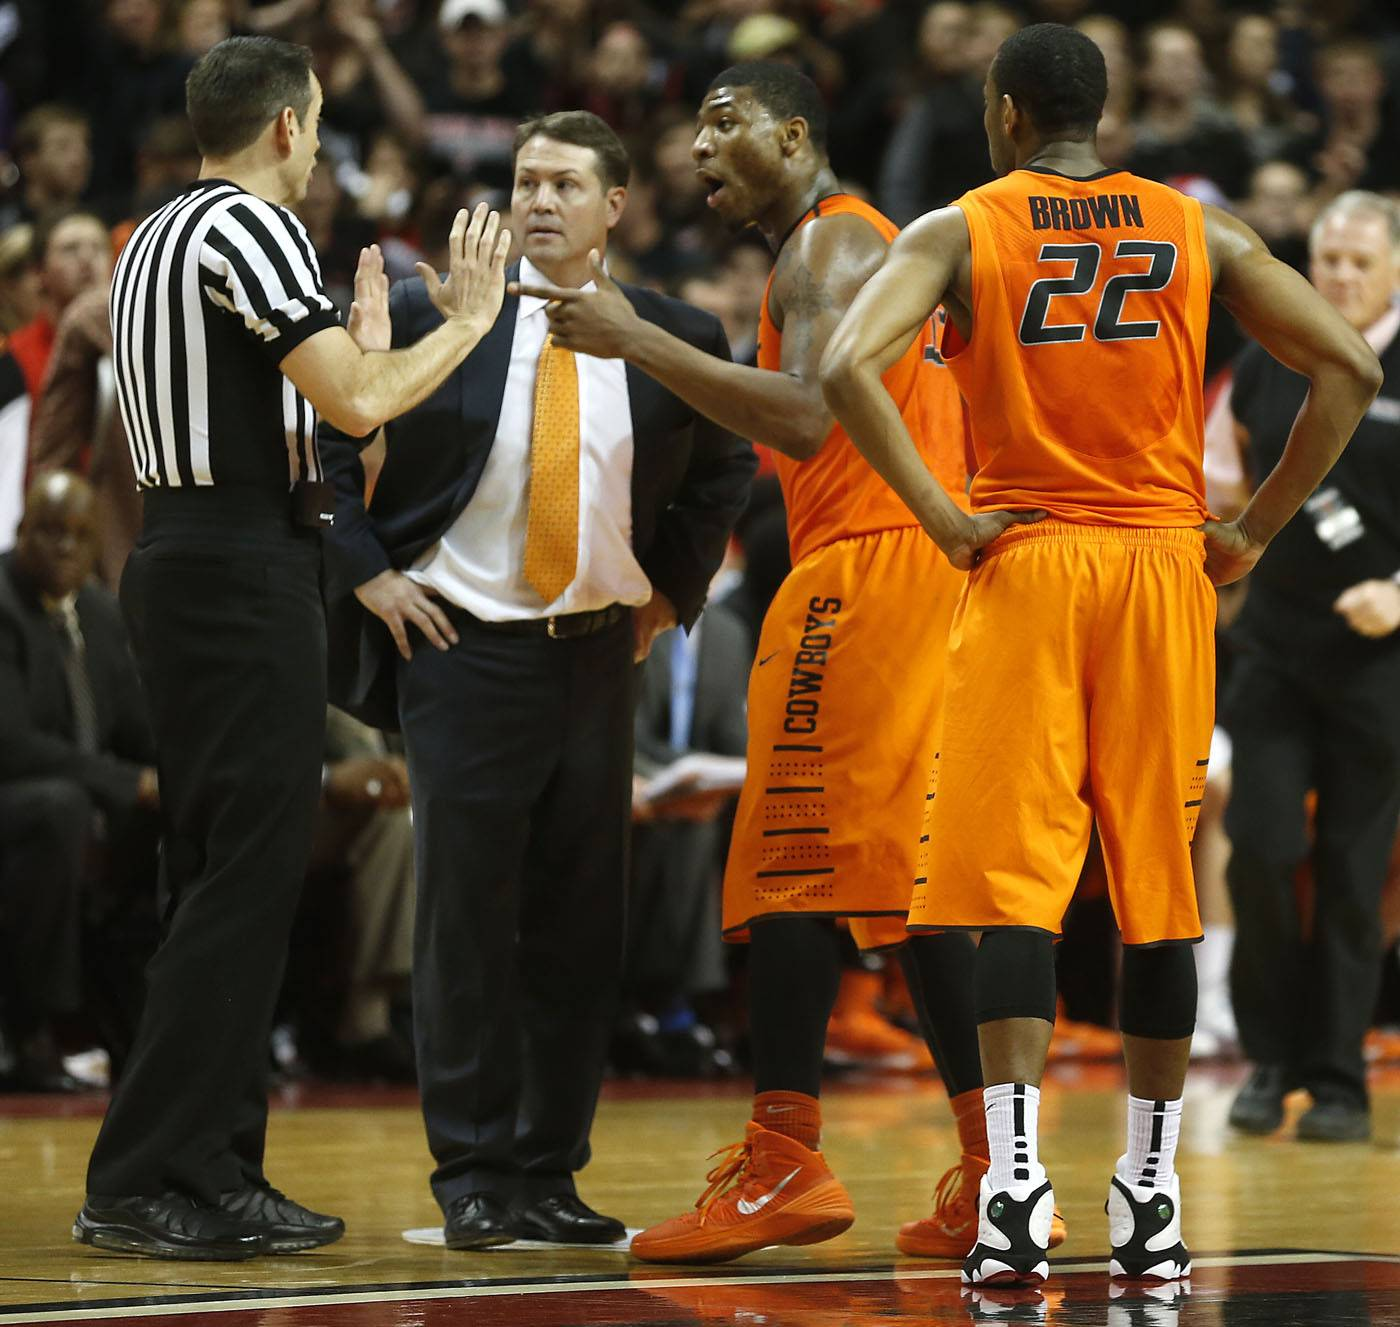 Associated Press Oklahoma State head coach Travis Ford, center, Marcus Smart and Markel Brown(22) speak to the referee after Smart shoved a fan Saturday during a NCAA college basketball game in Lubbock, Texas.